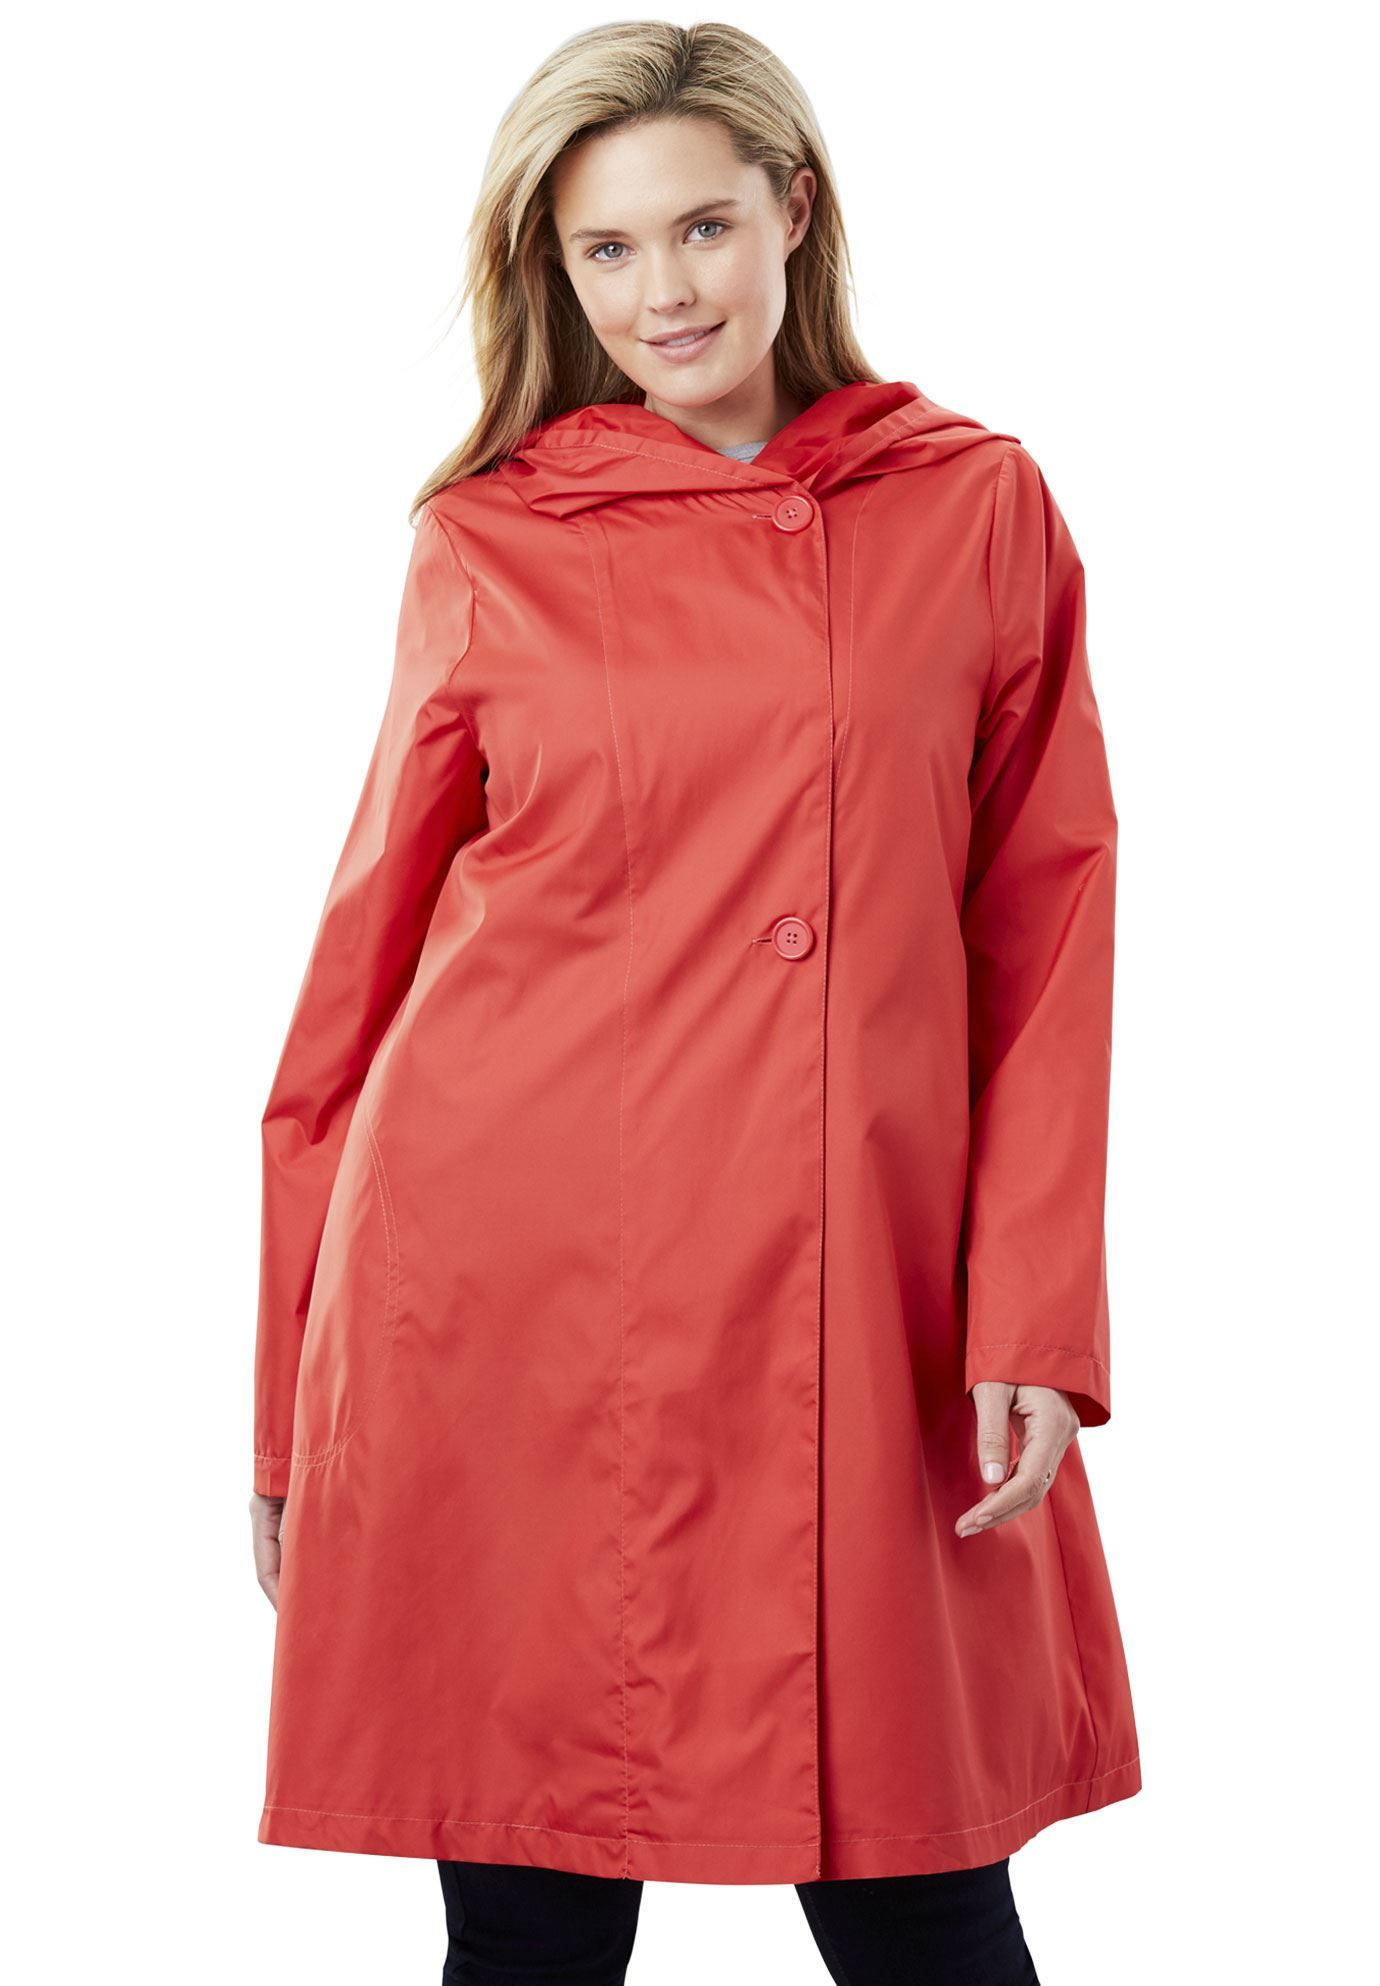 ebc511dd Packable water-resistant hooded raincoat with zip bag - Women's Plus Size  Clothing